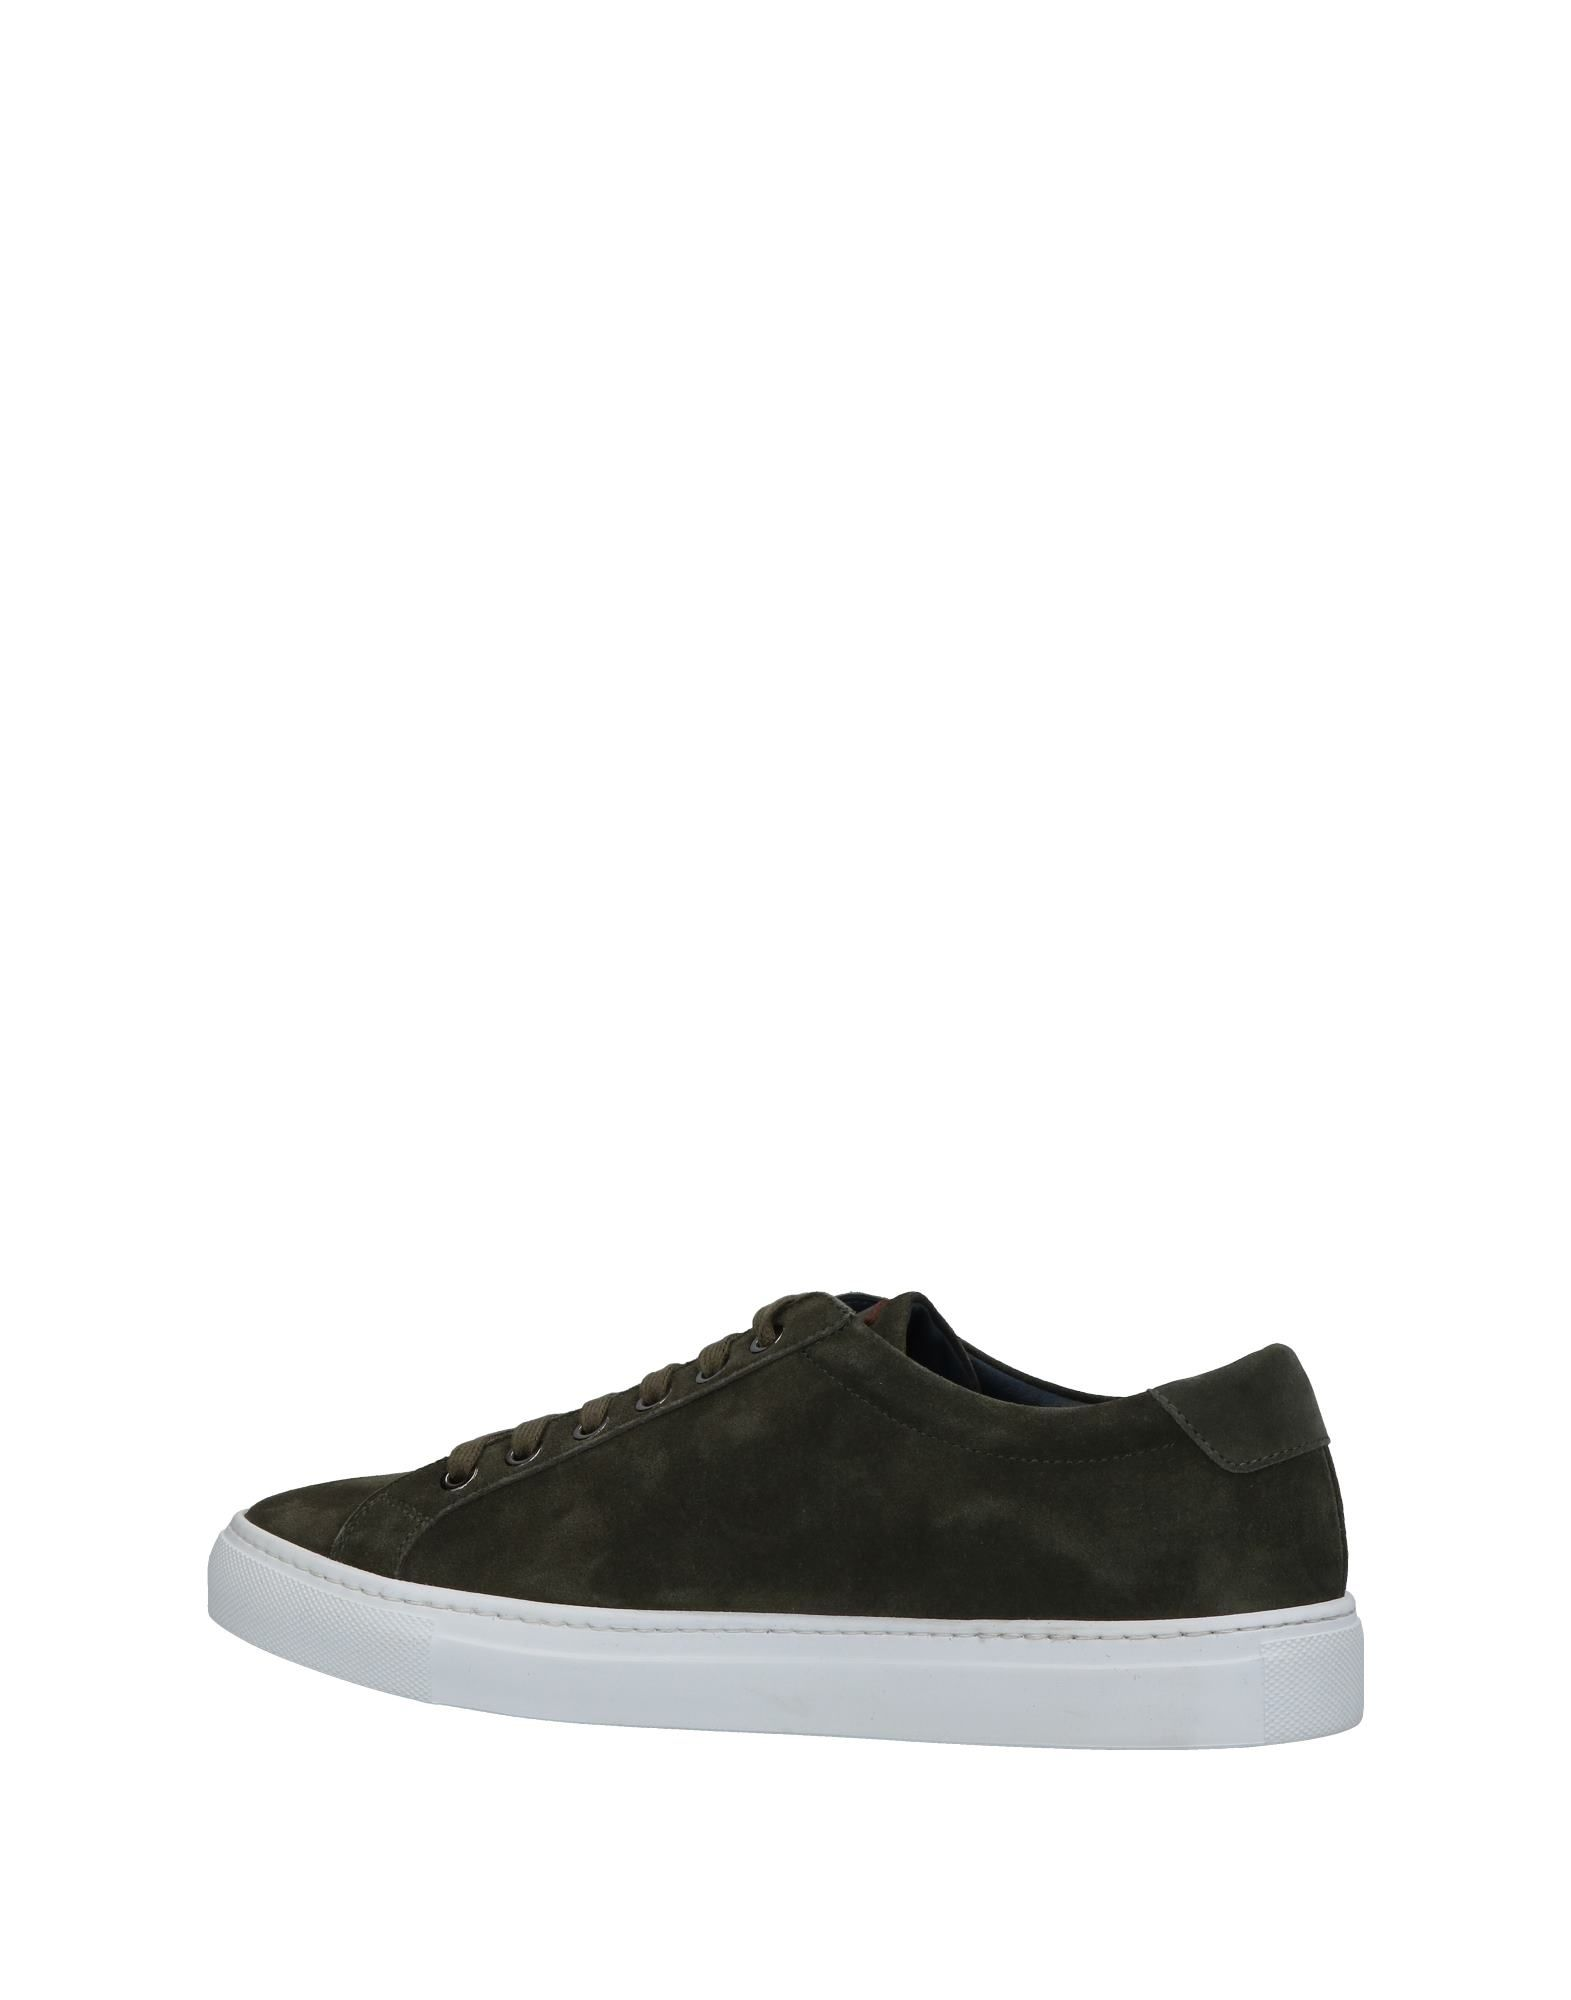 Fabiano Ricci Ricci Ricci Sneakers - Men Fabiano Ricci Sneakers online on  United Kingdom - 11117220NG 372bff